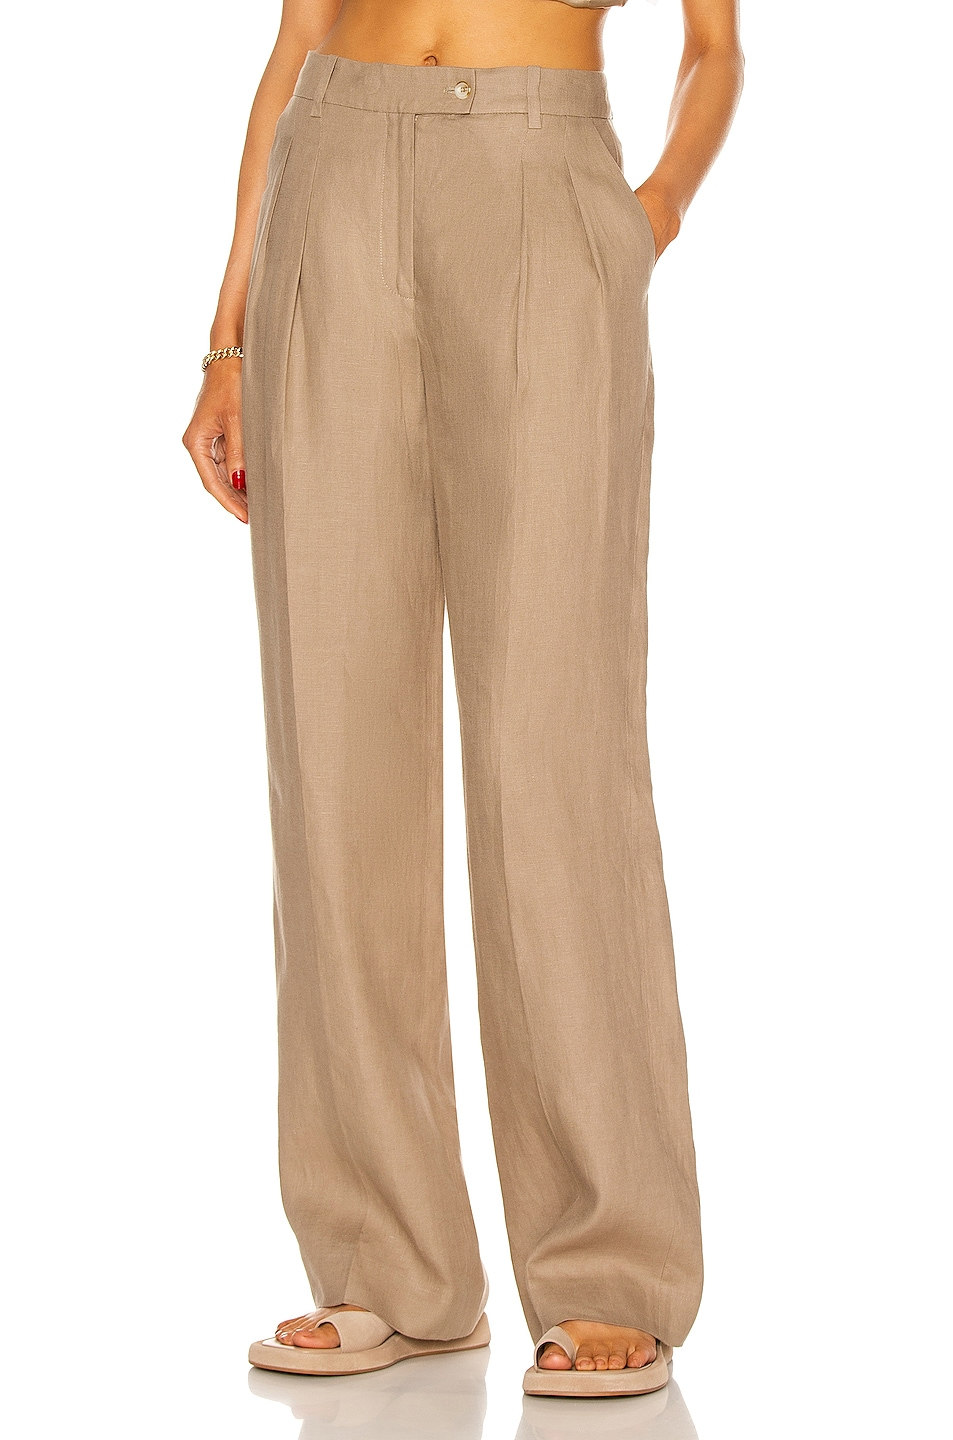 Image 1 of Loulou Studio Bidong Linen Pant in Taupe